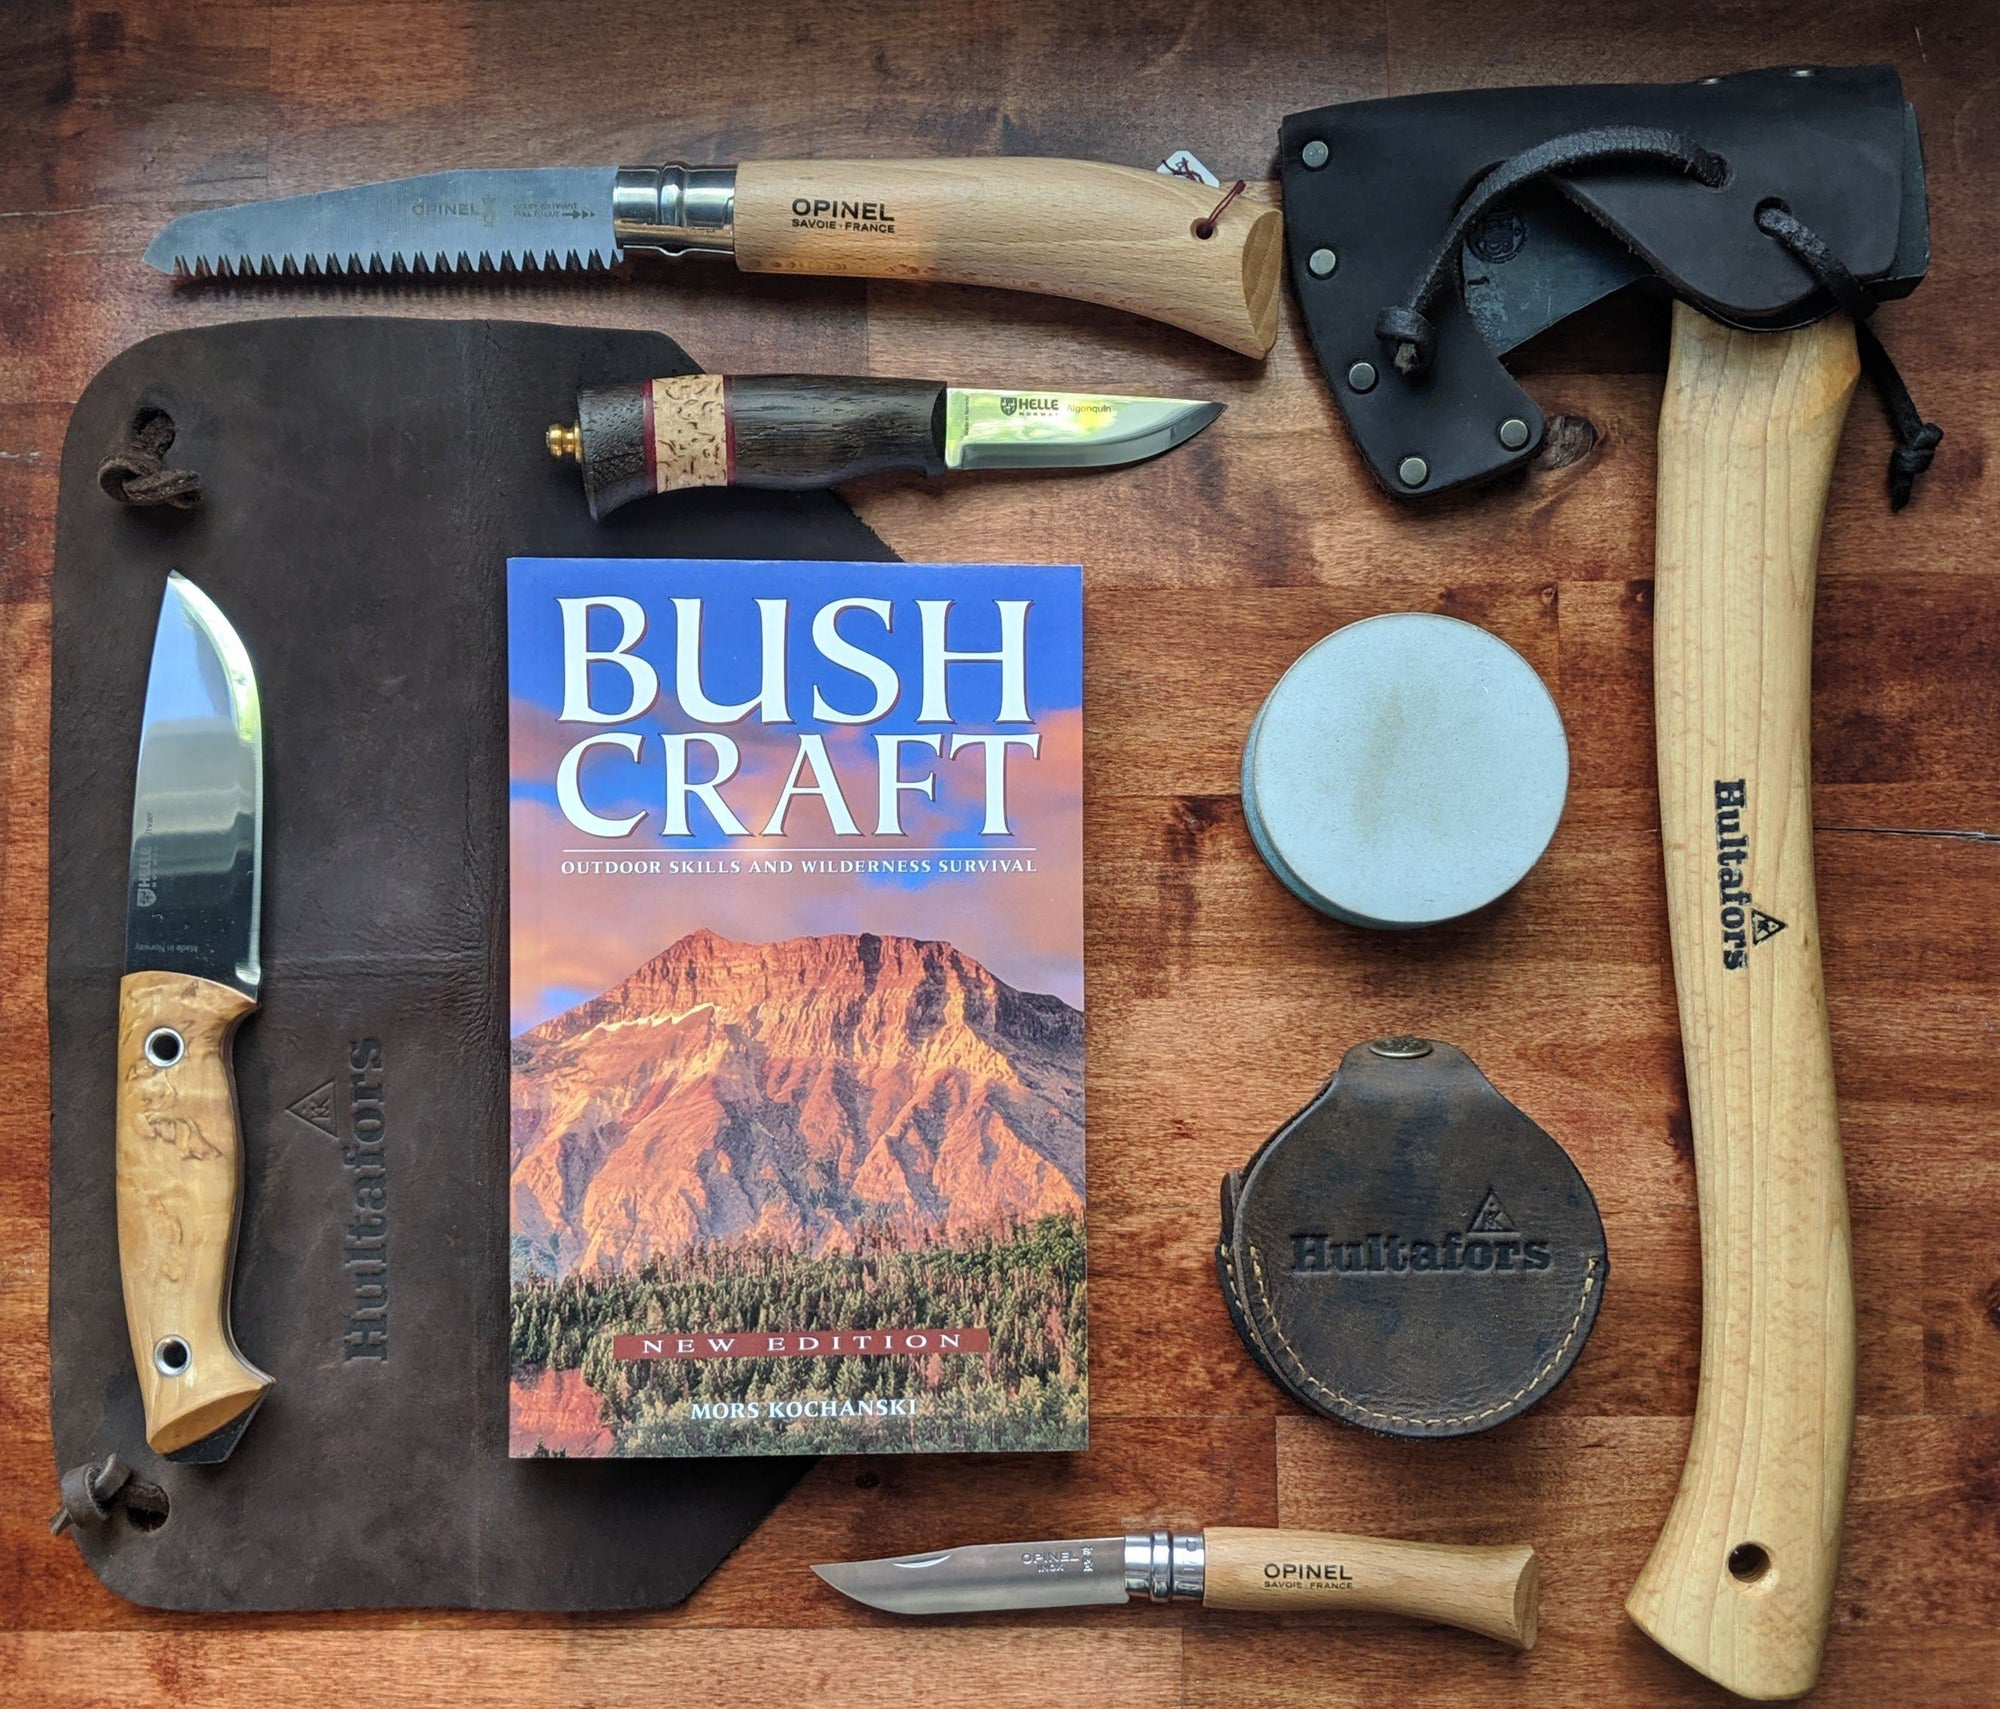 Bushcraft - Outdoor Skills and Wilderness Survival by Mors Kochanski